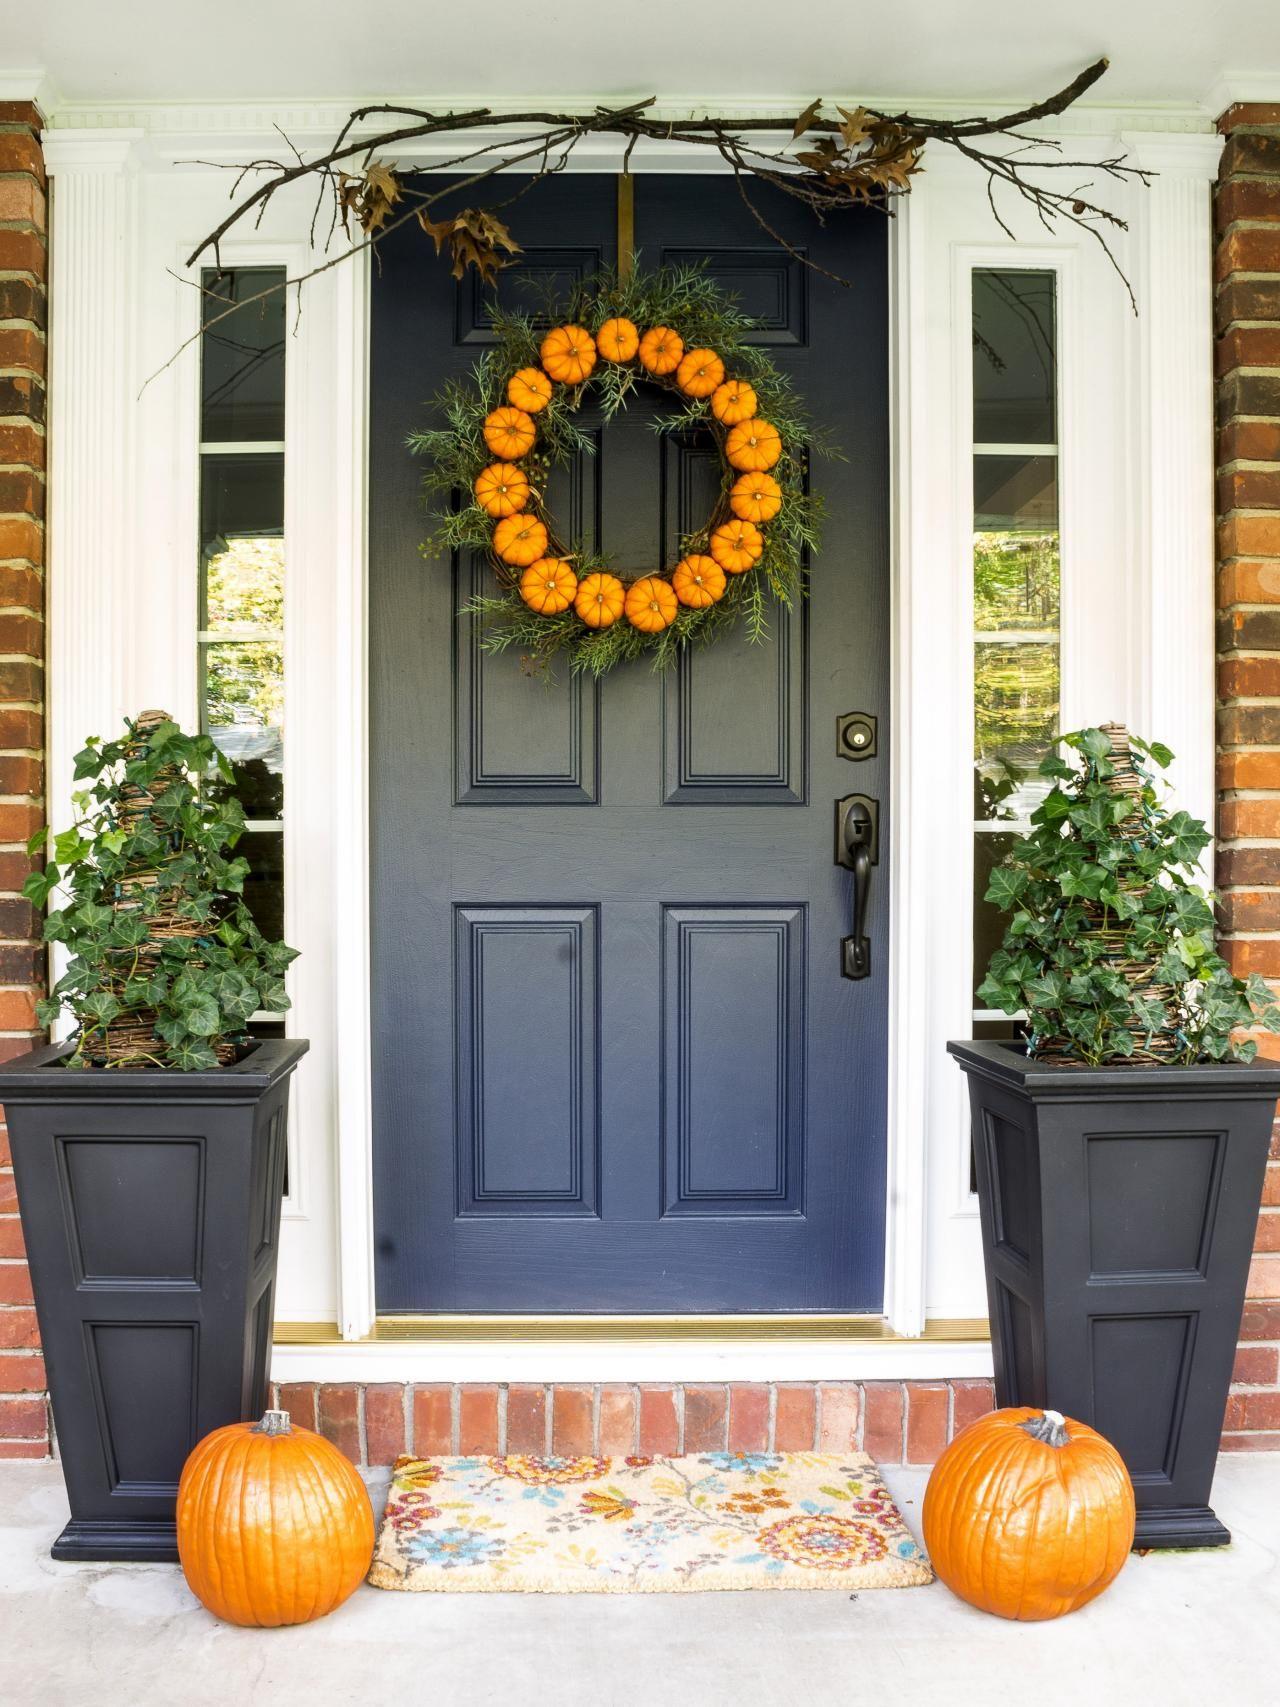 Popular colors to paint an entry door doors decorating and navy blue door dressed for october popular colors to paint an entry door installing rubansaba